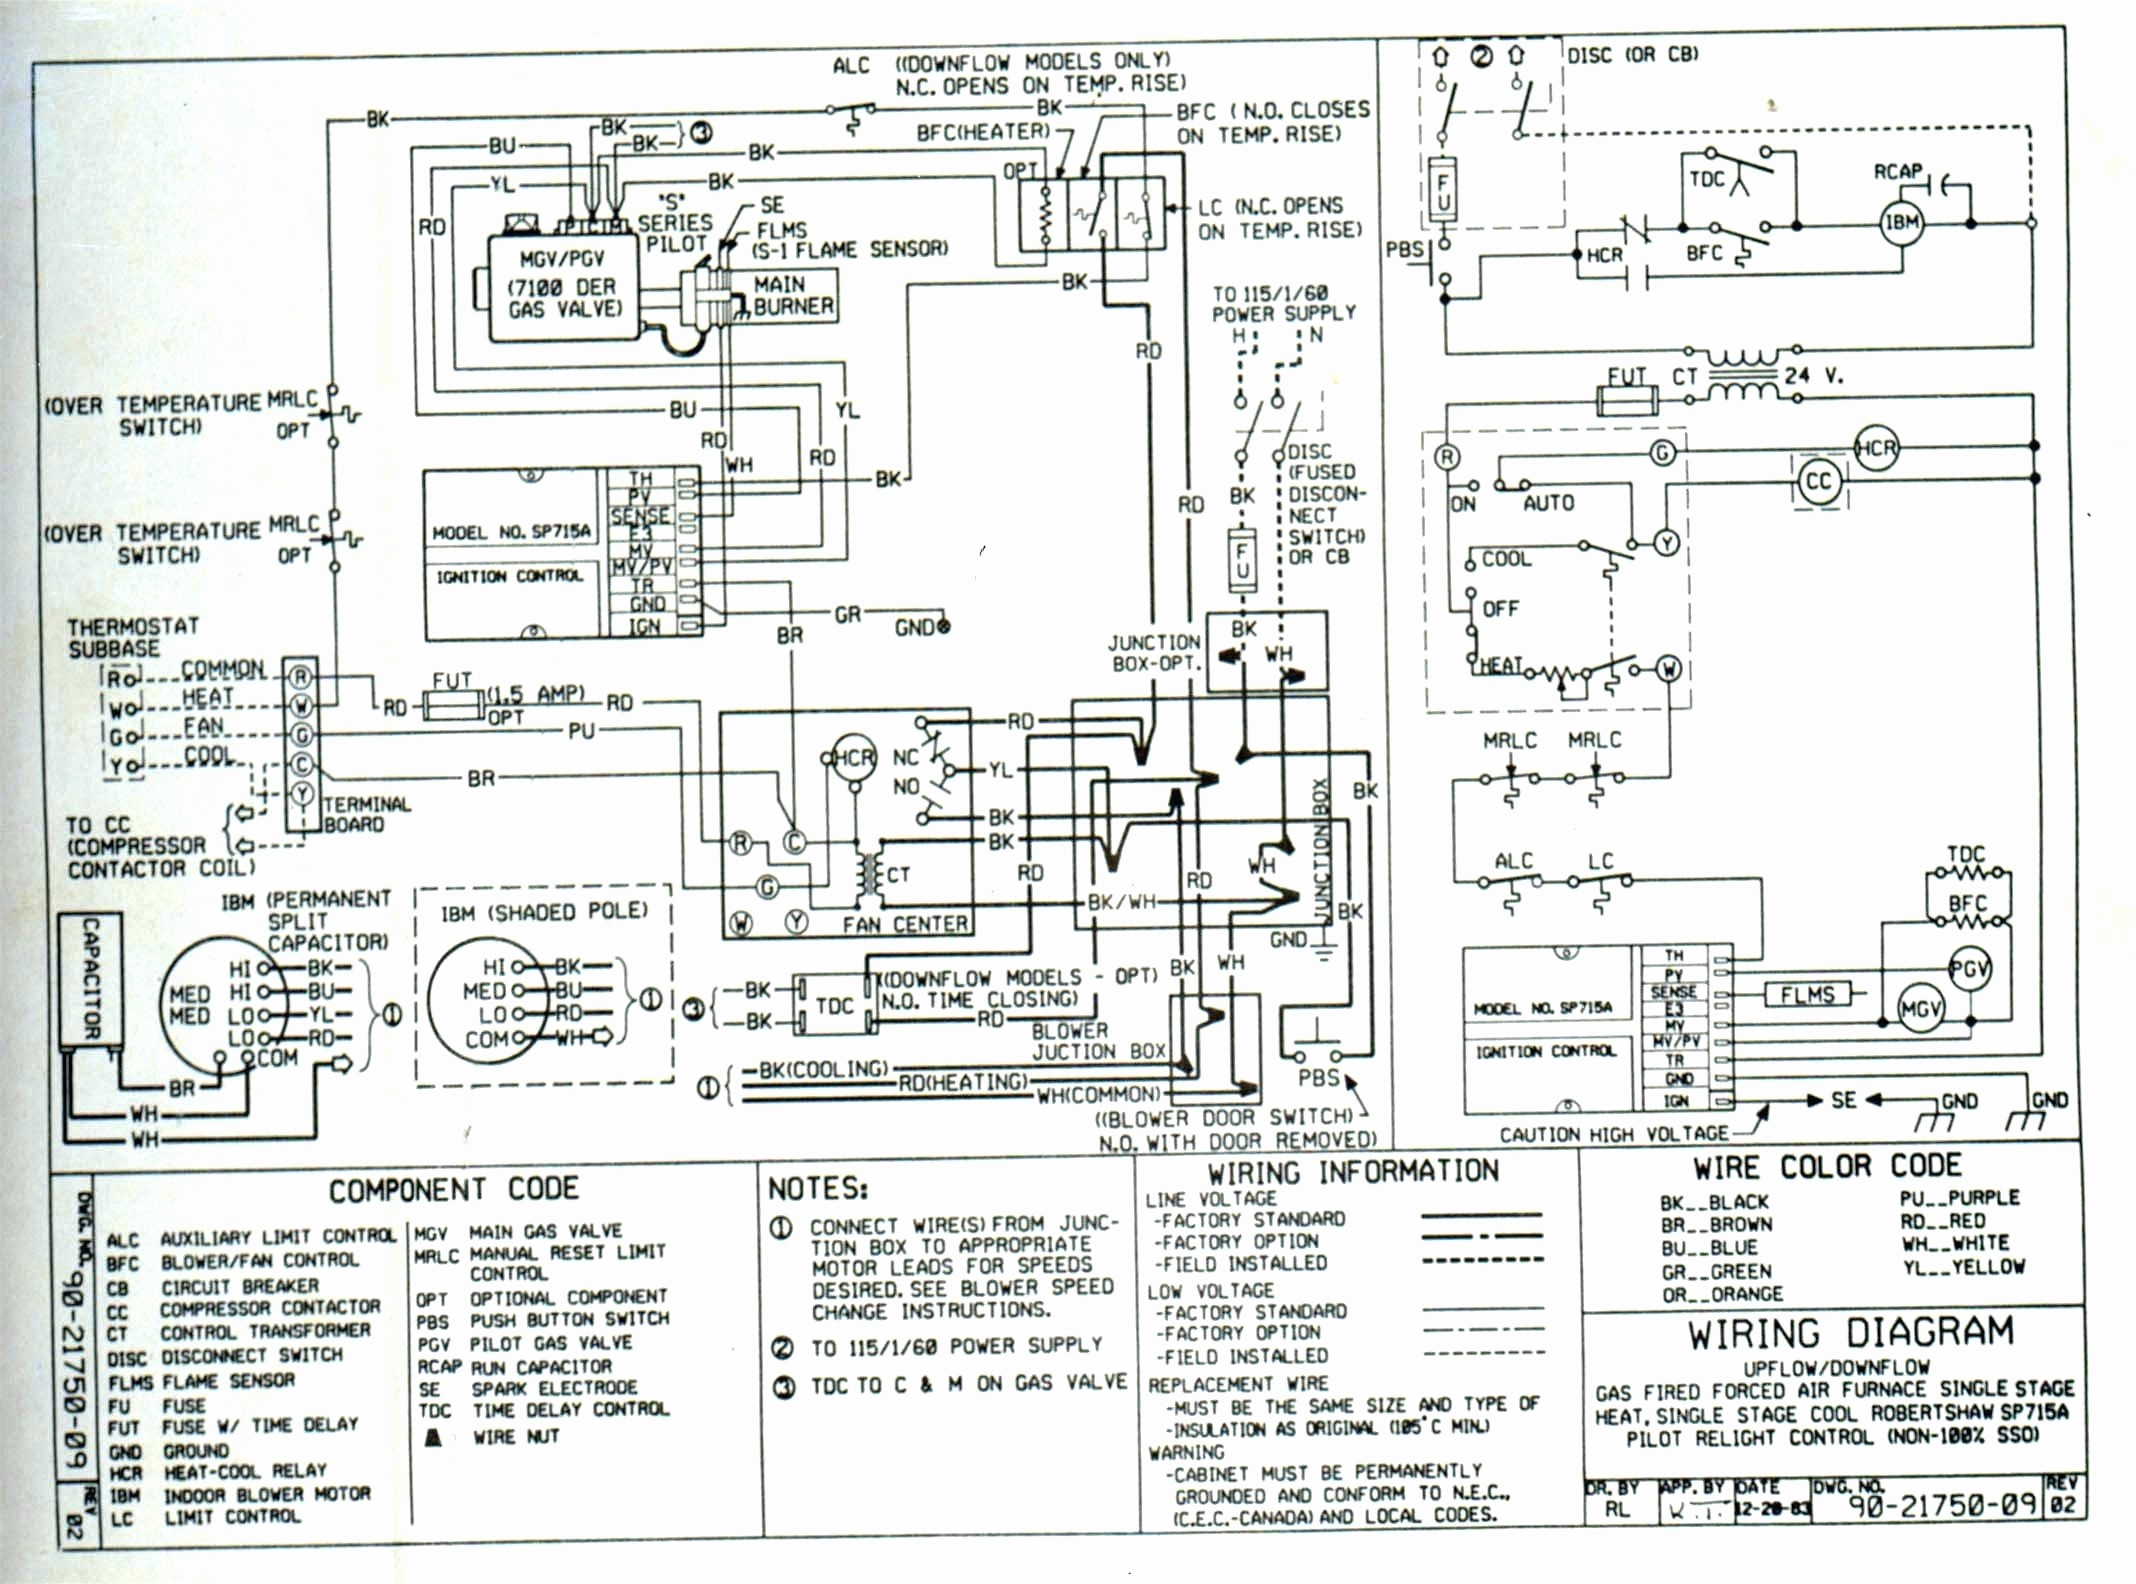 Wiring Diagram For Bodine Recessed Light | Wiring Diagram